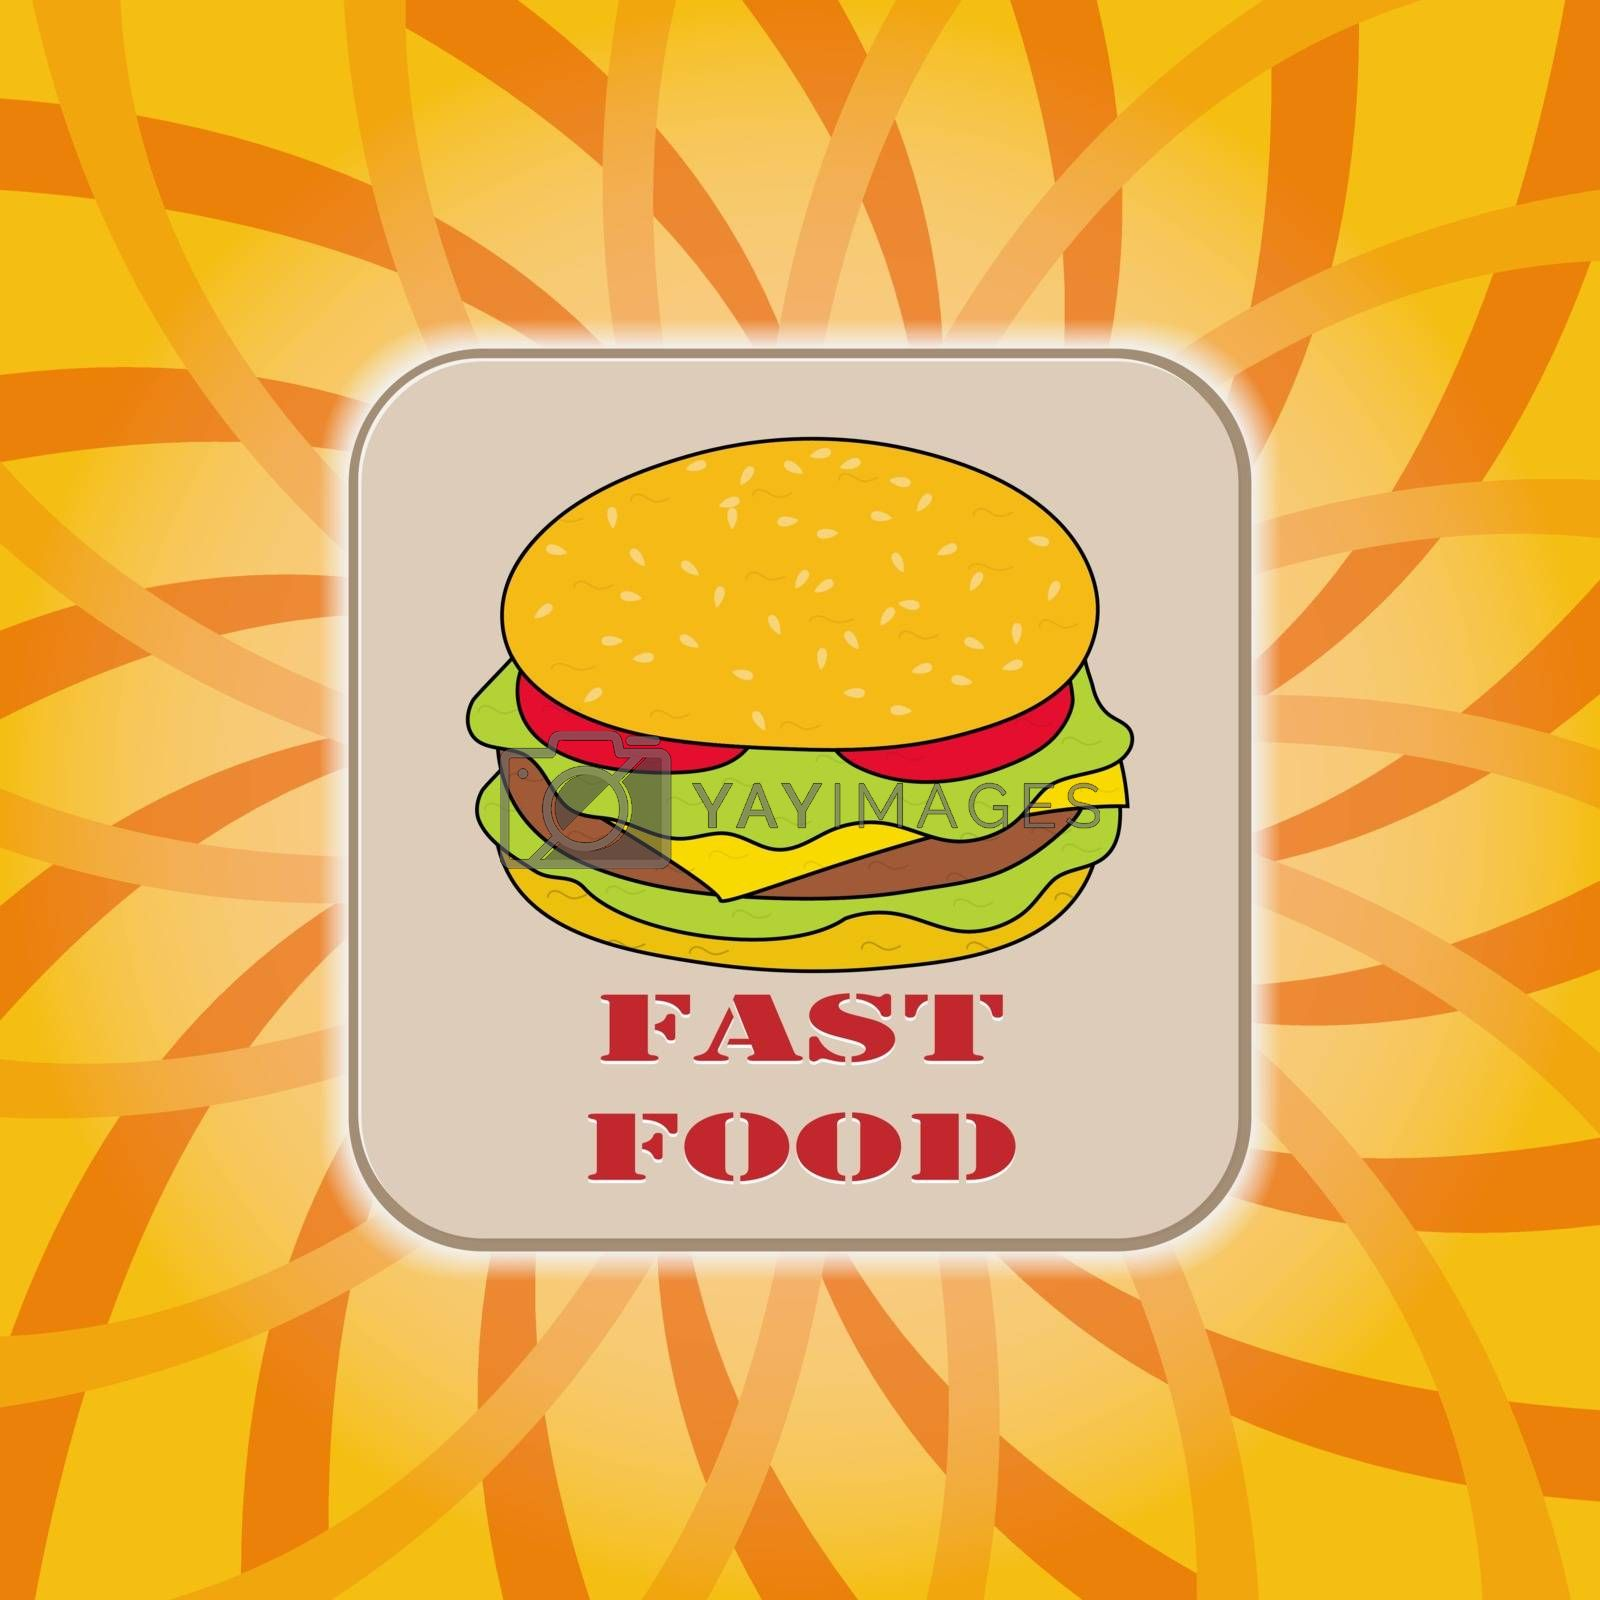 Fast food, hamburger on colorful background, for design and decoration